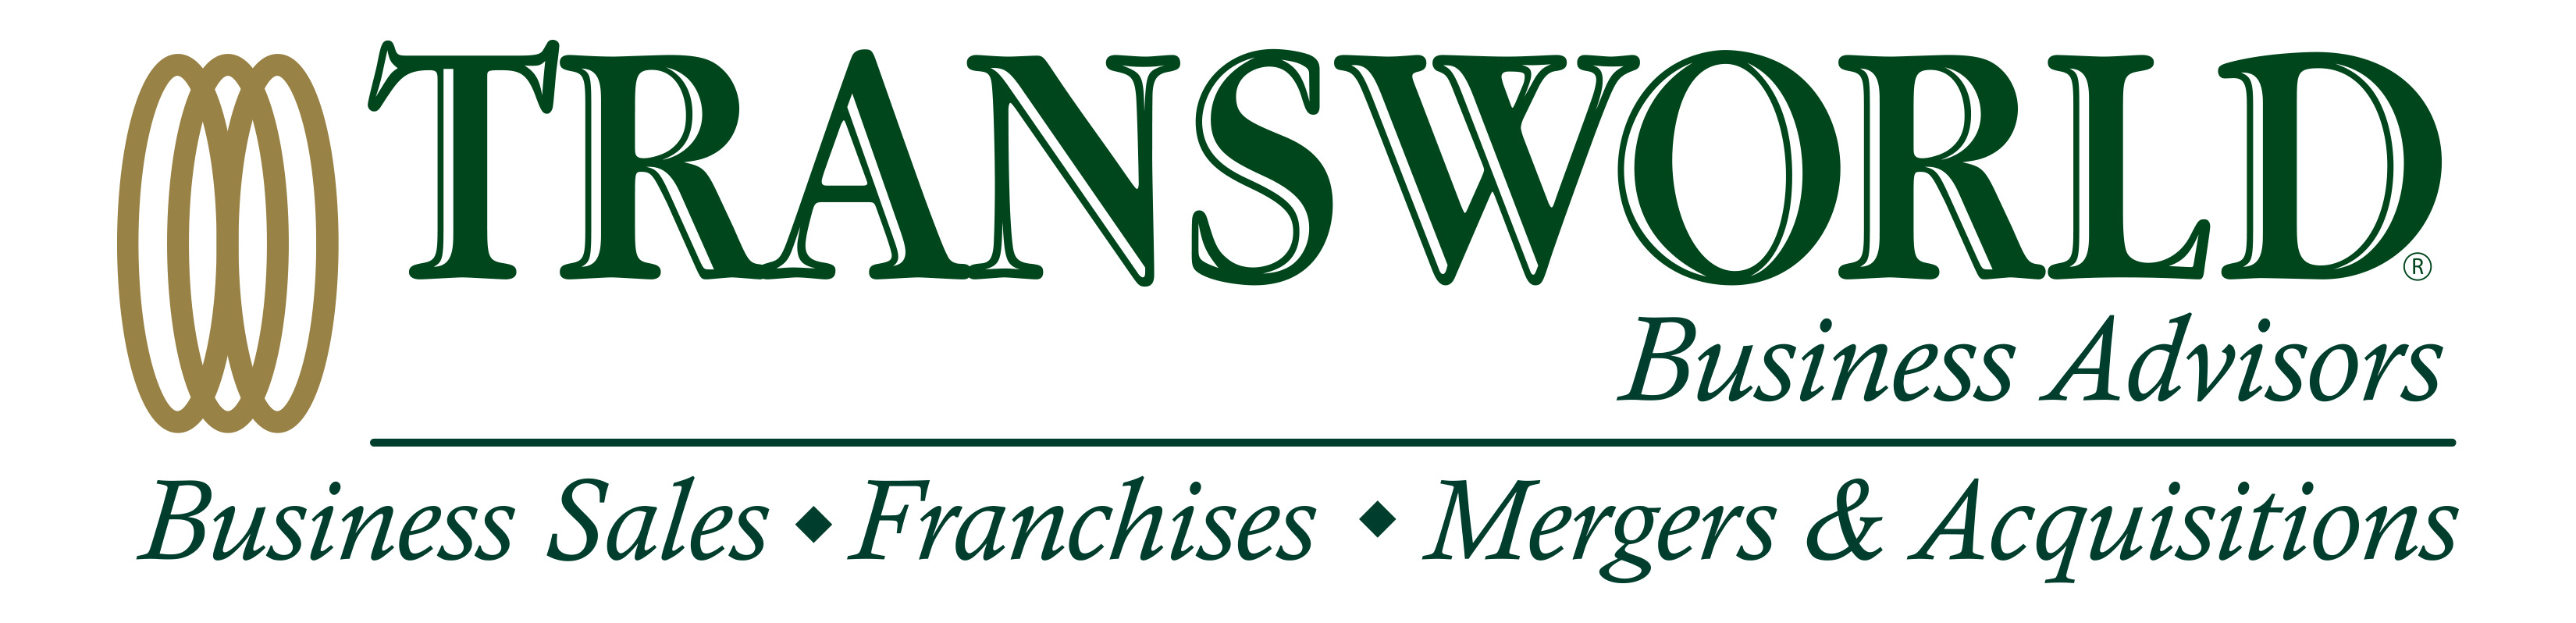 Transworld Business Advisors | FRANCHISE OPPORTUNITY